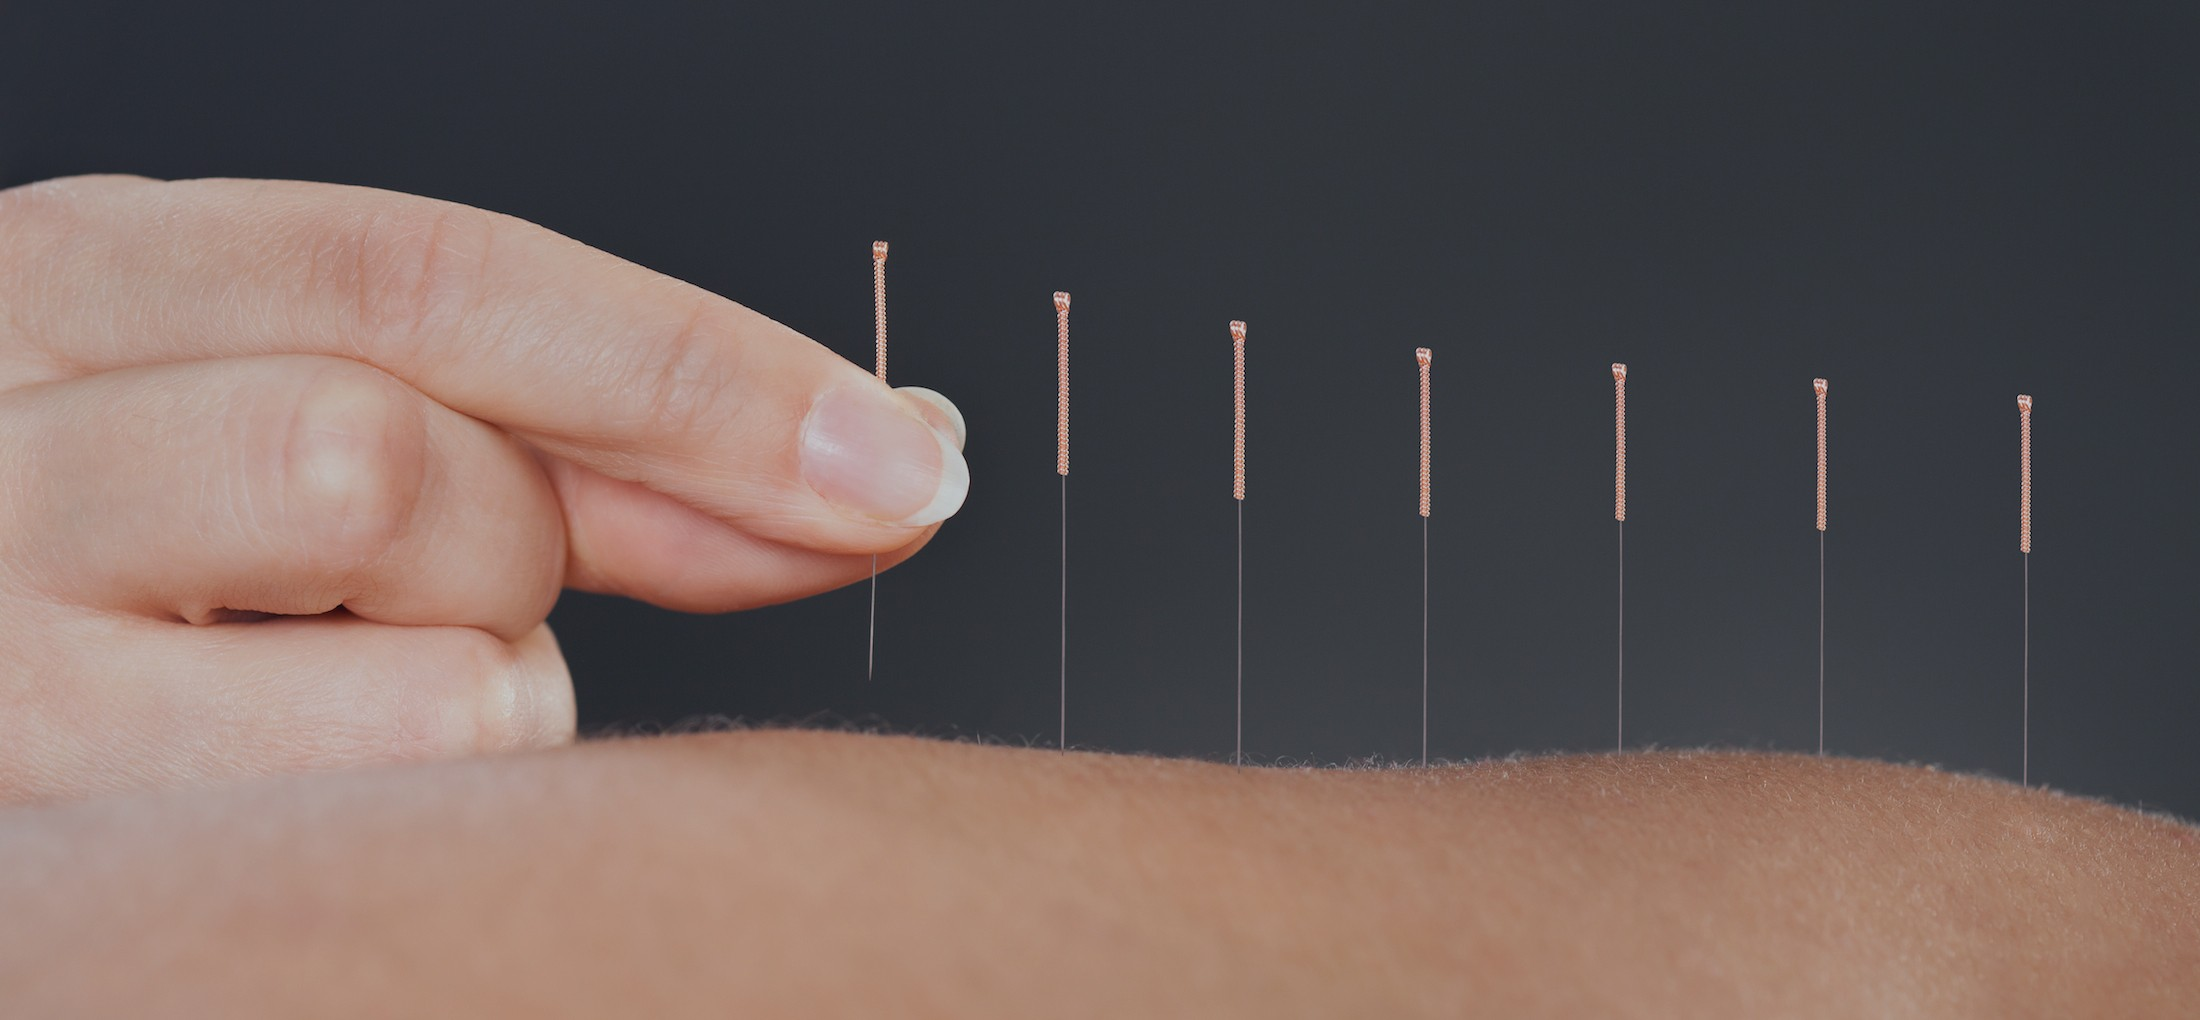 ACUPUNCTURE / TRADITIONAL CHINESE MEDICINE - Balance Complimentary Medicine